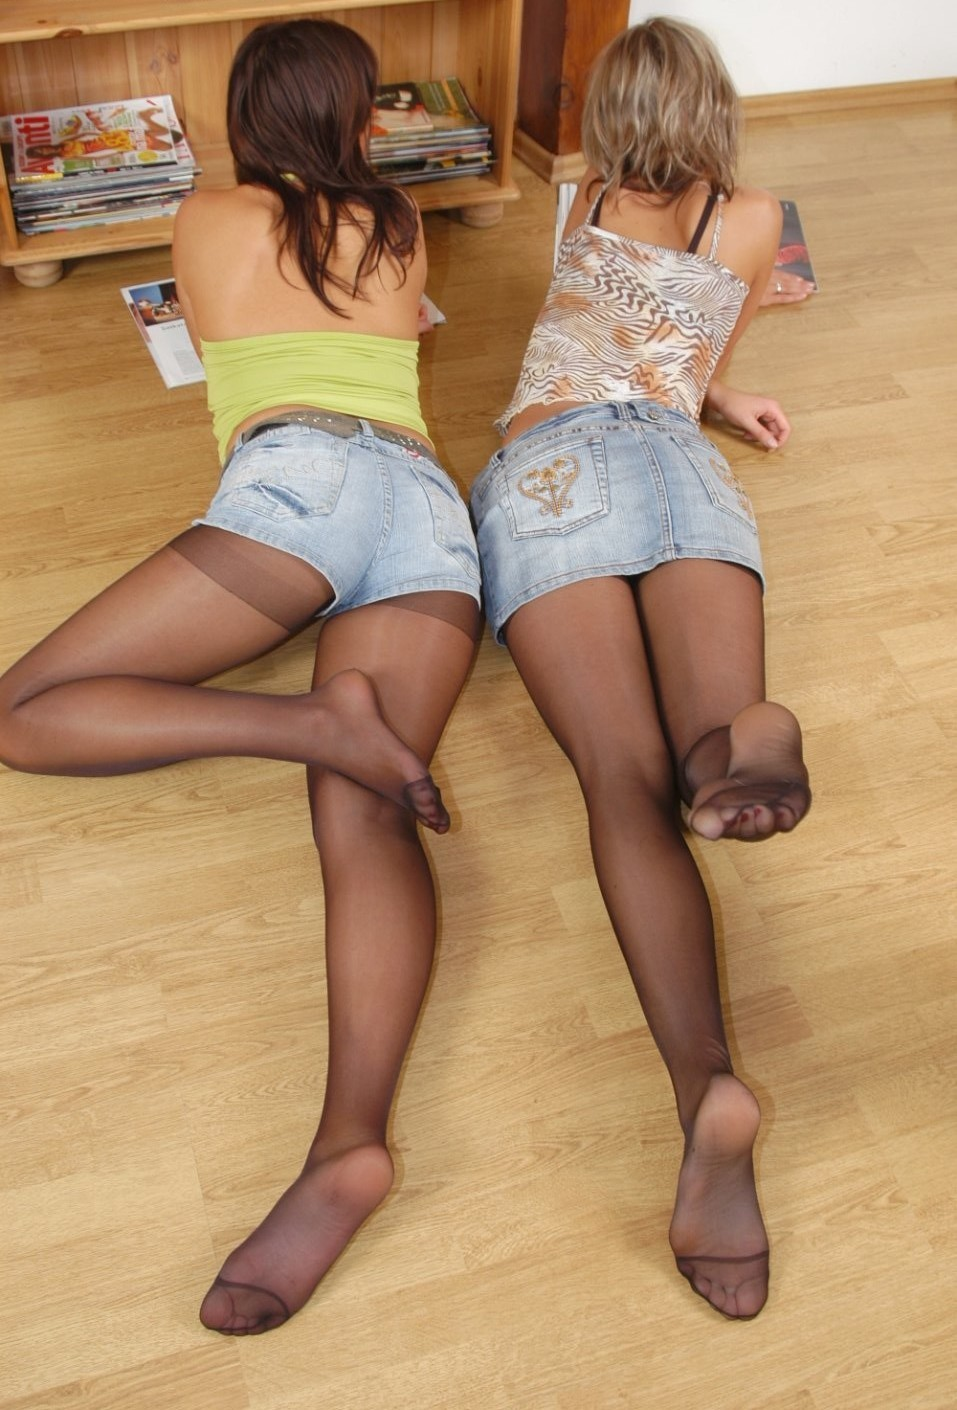 naked-girls-in-tights-pantyhose-mix-vol3-60